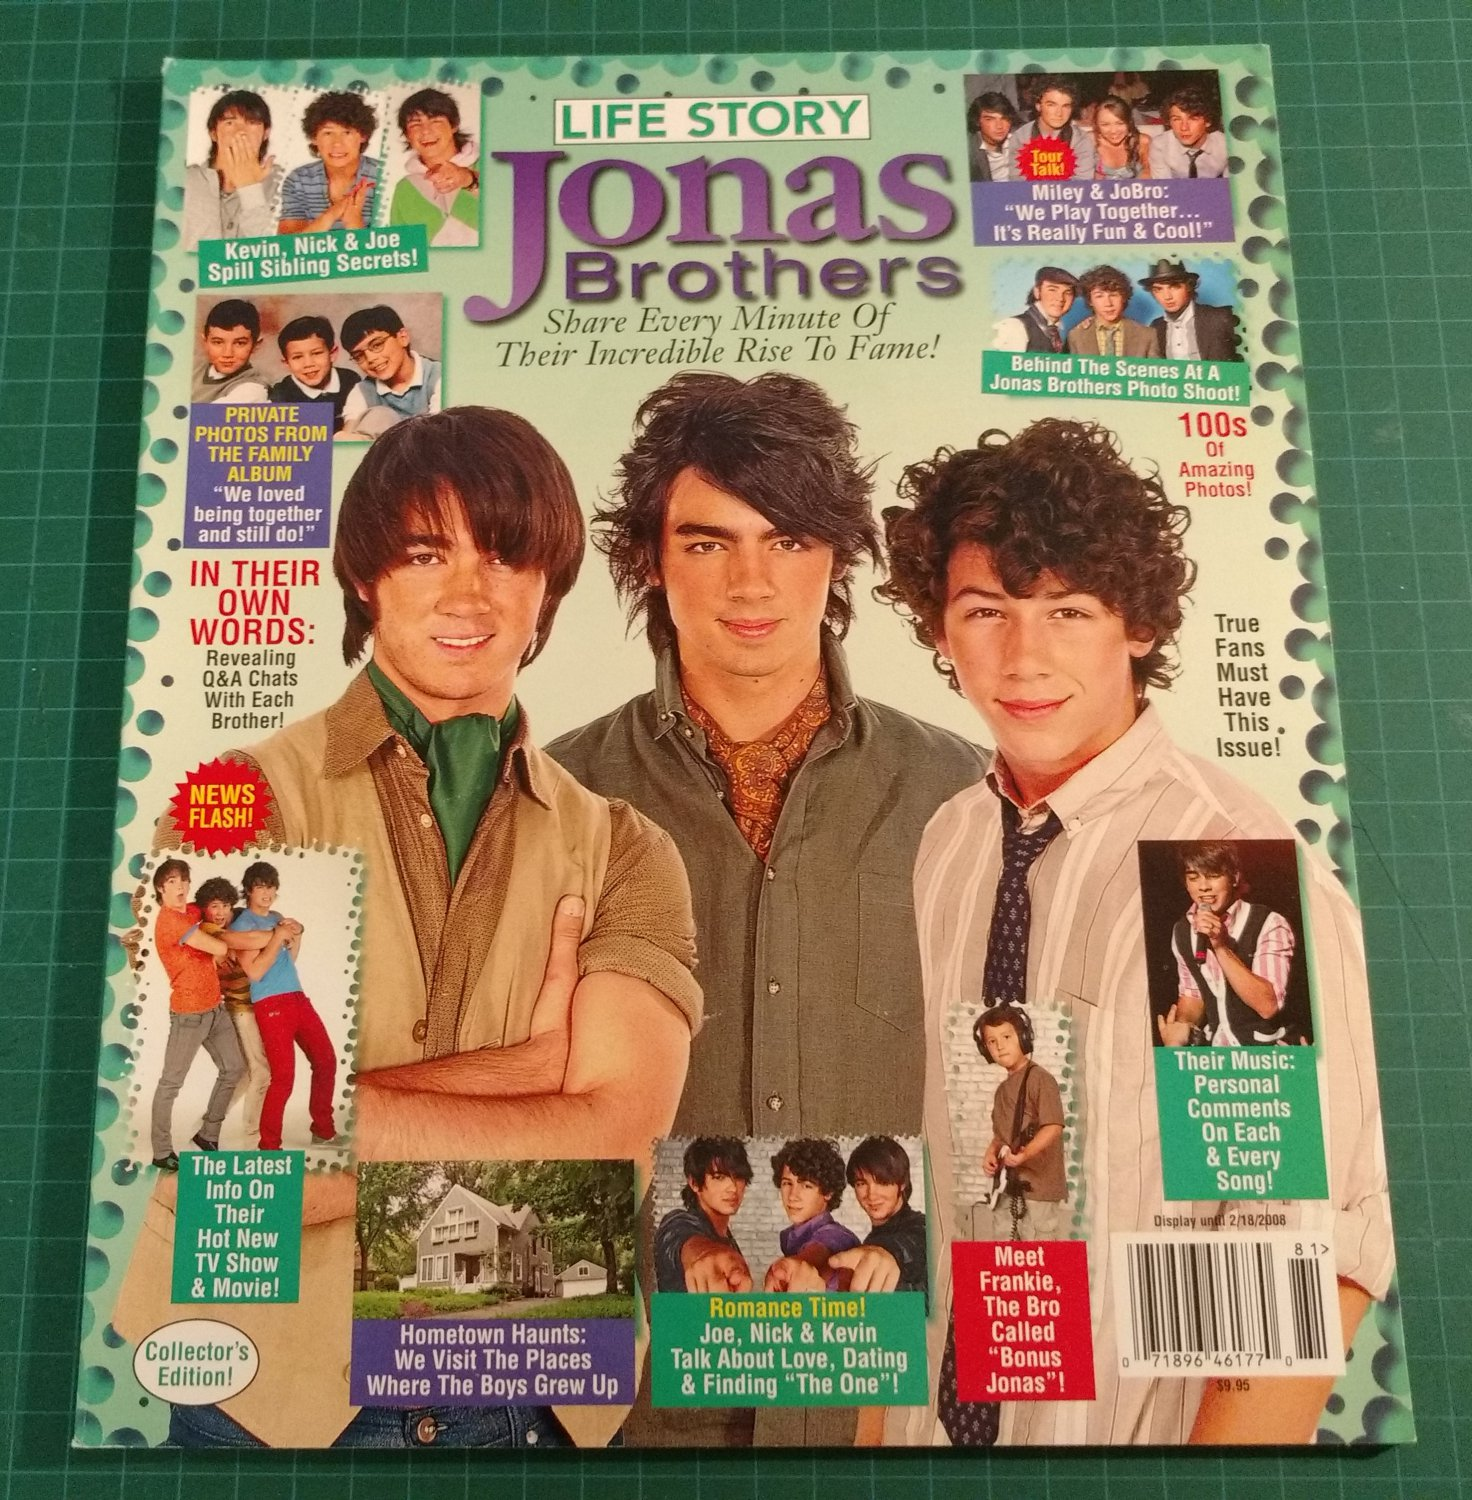 JONAS BROTHERS Life Story Collector's Edition 2008 Full Color NEW & UNREAD COPY!